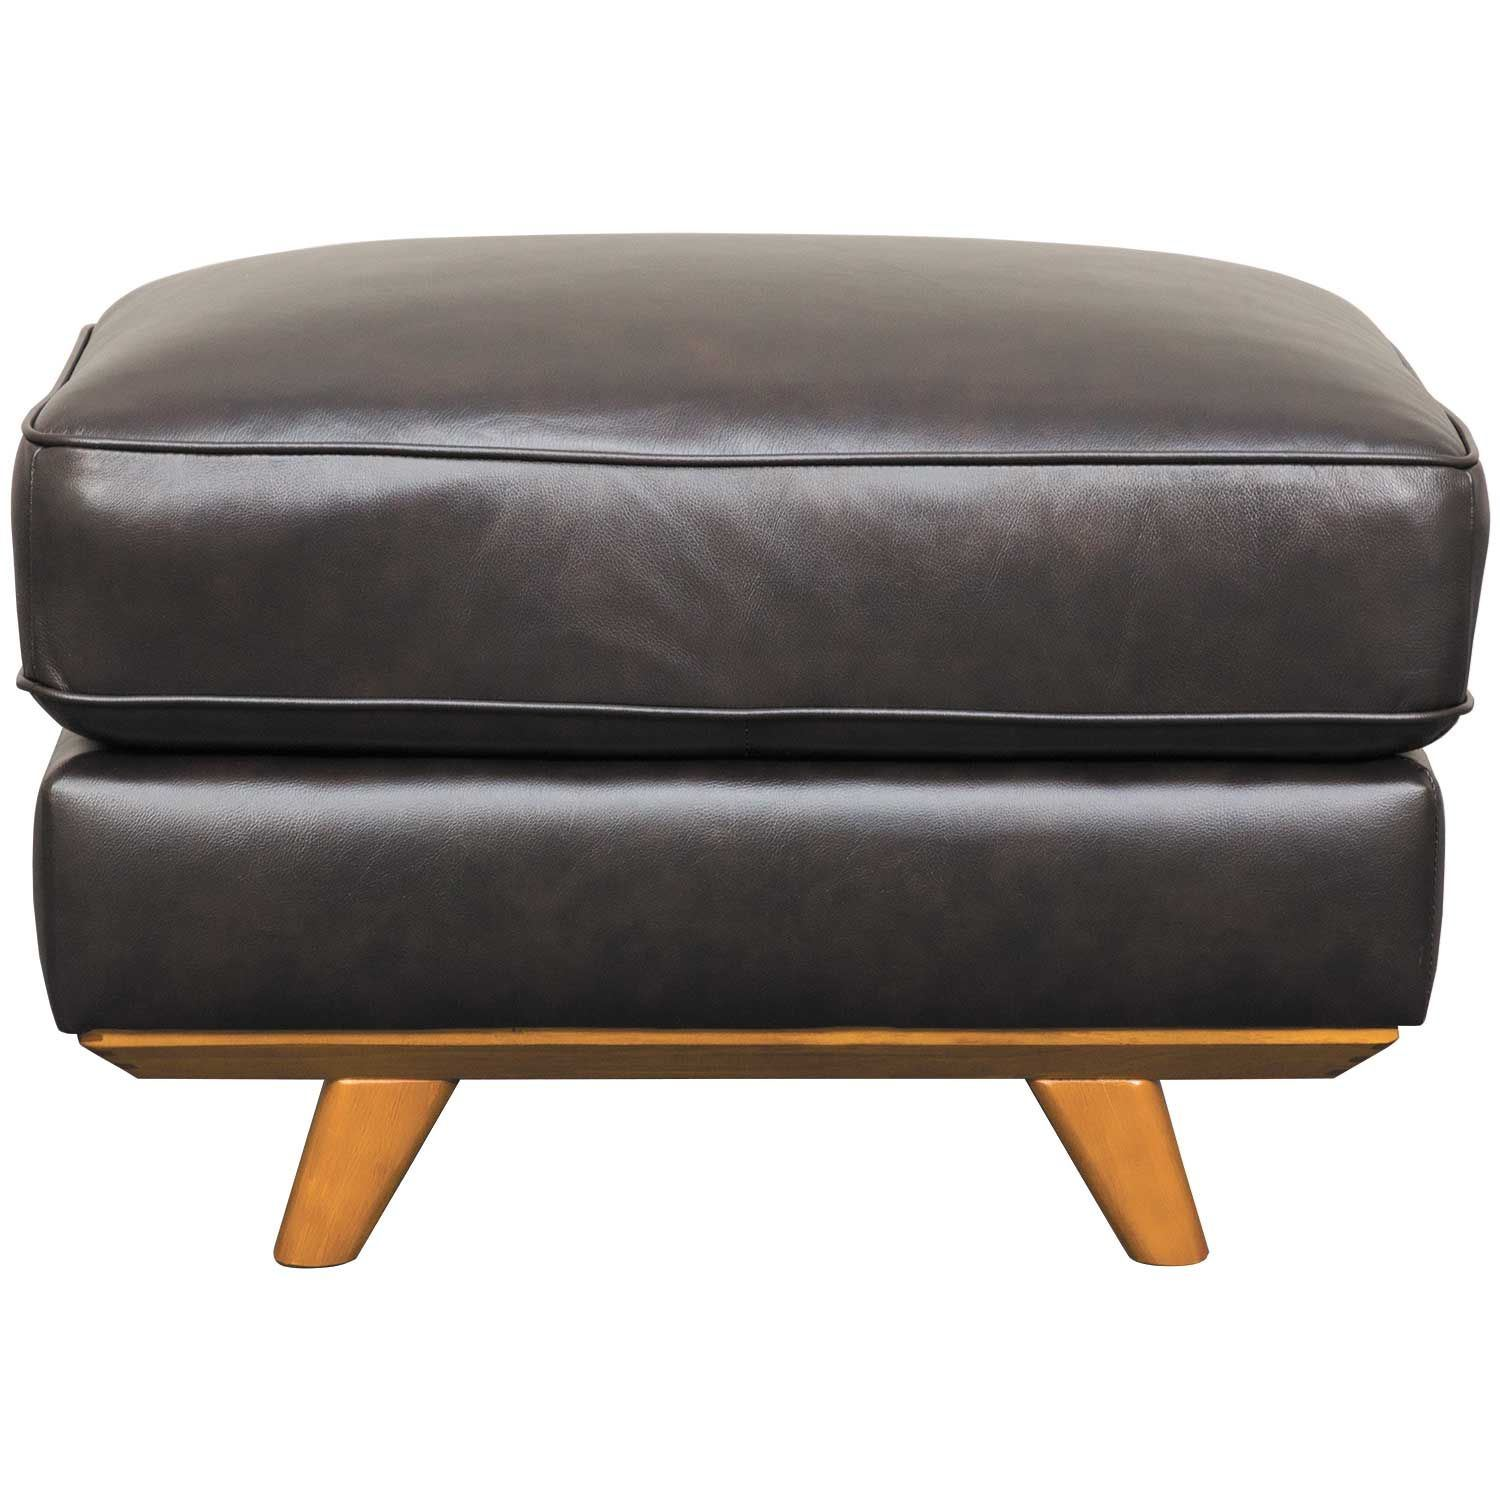 Excellent Carrington Leather Ottoman As 6902Br Dbrn 4 Abbyson Squirreltailoven Fun Painted Chair Ideas Images Squirreltailovenorg